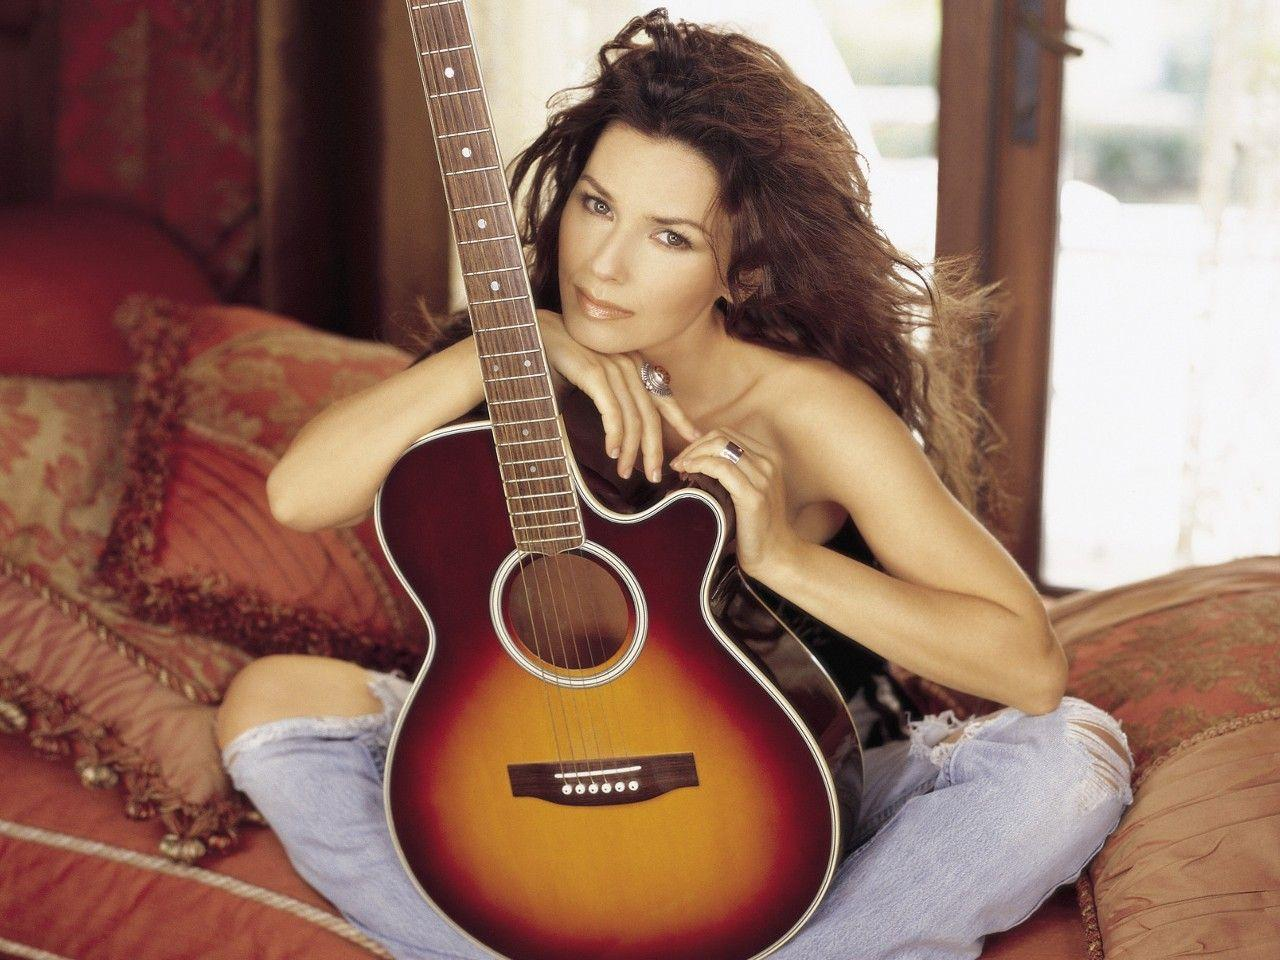 G C W: Shania Twain Wallpapers and Biography.